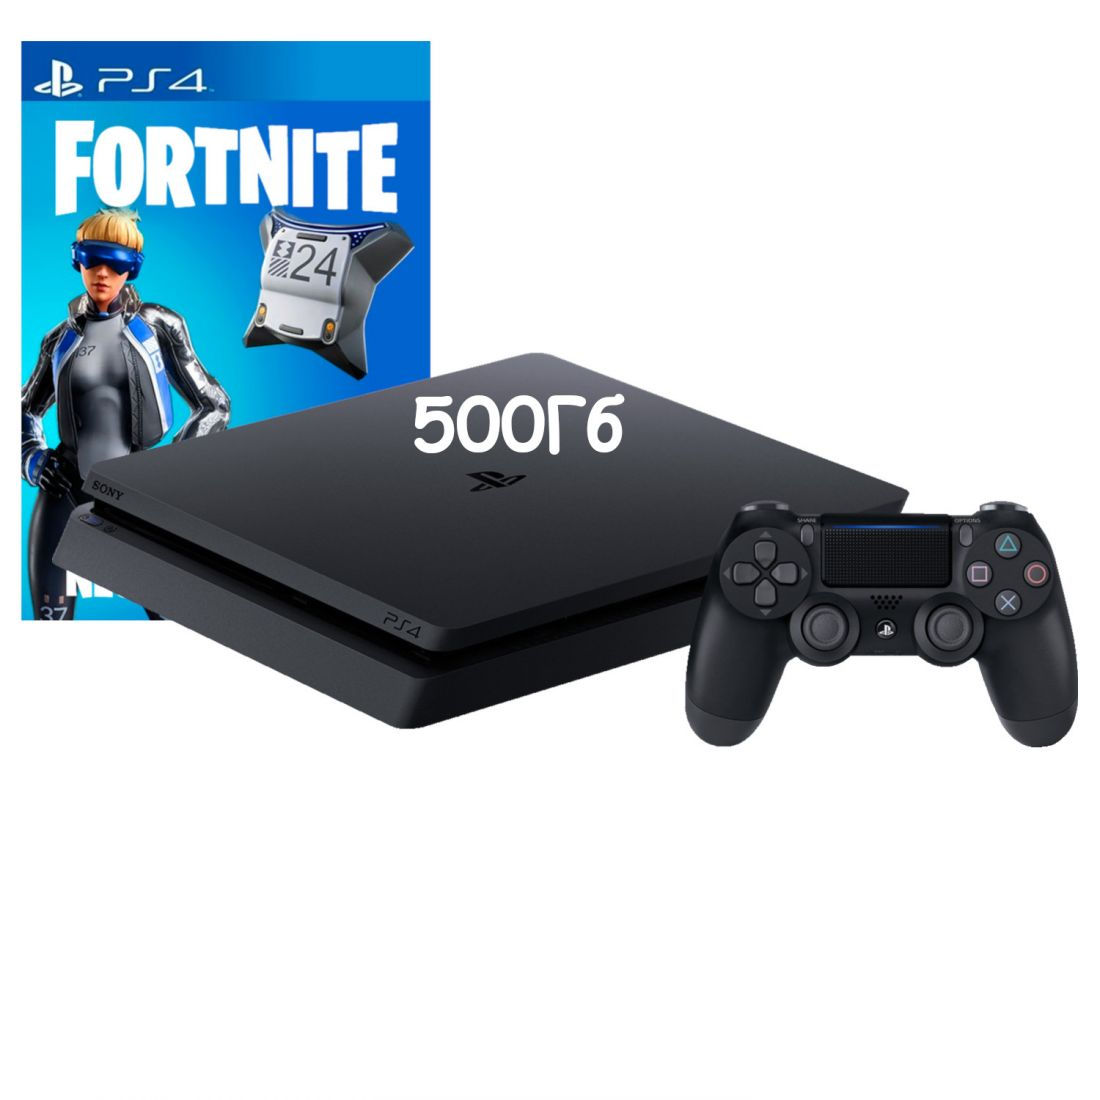 Sony PlayStation 4 Slim 500 ГБ + Игра Fortnite Neo Versa